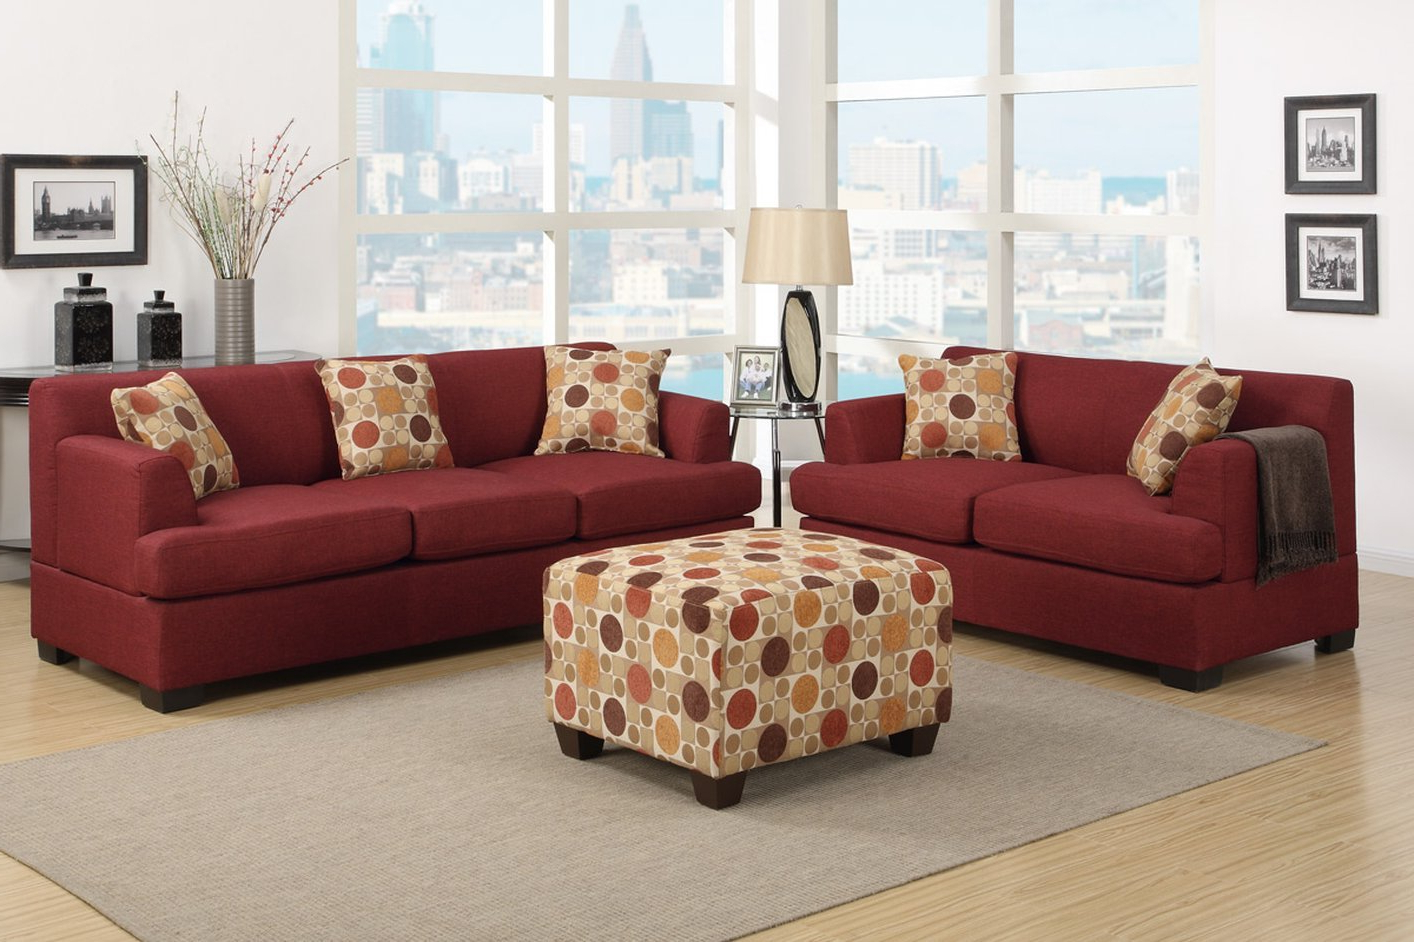 Red Sofas Within Most Recent Poundex Montreal Iv F7963 Red Fabric Sofa – Steal A Sofa (View 13 of 15)